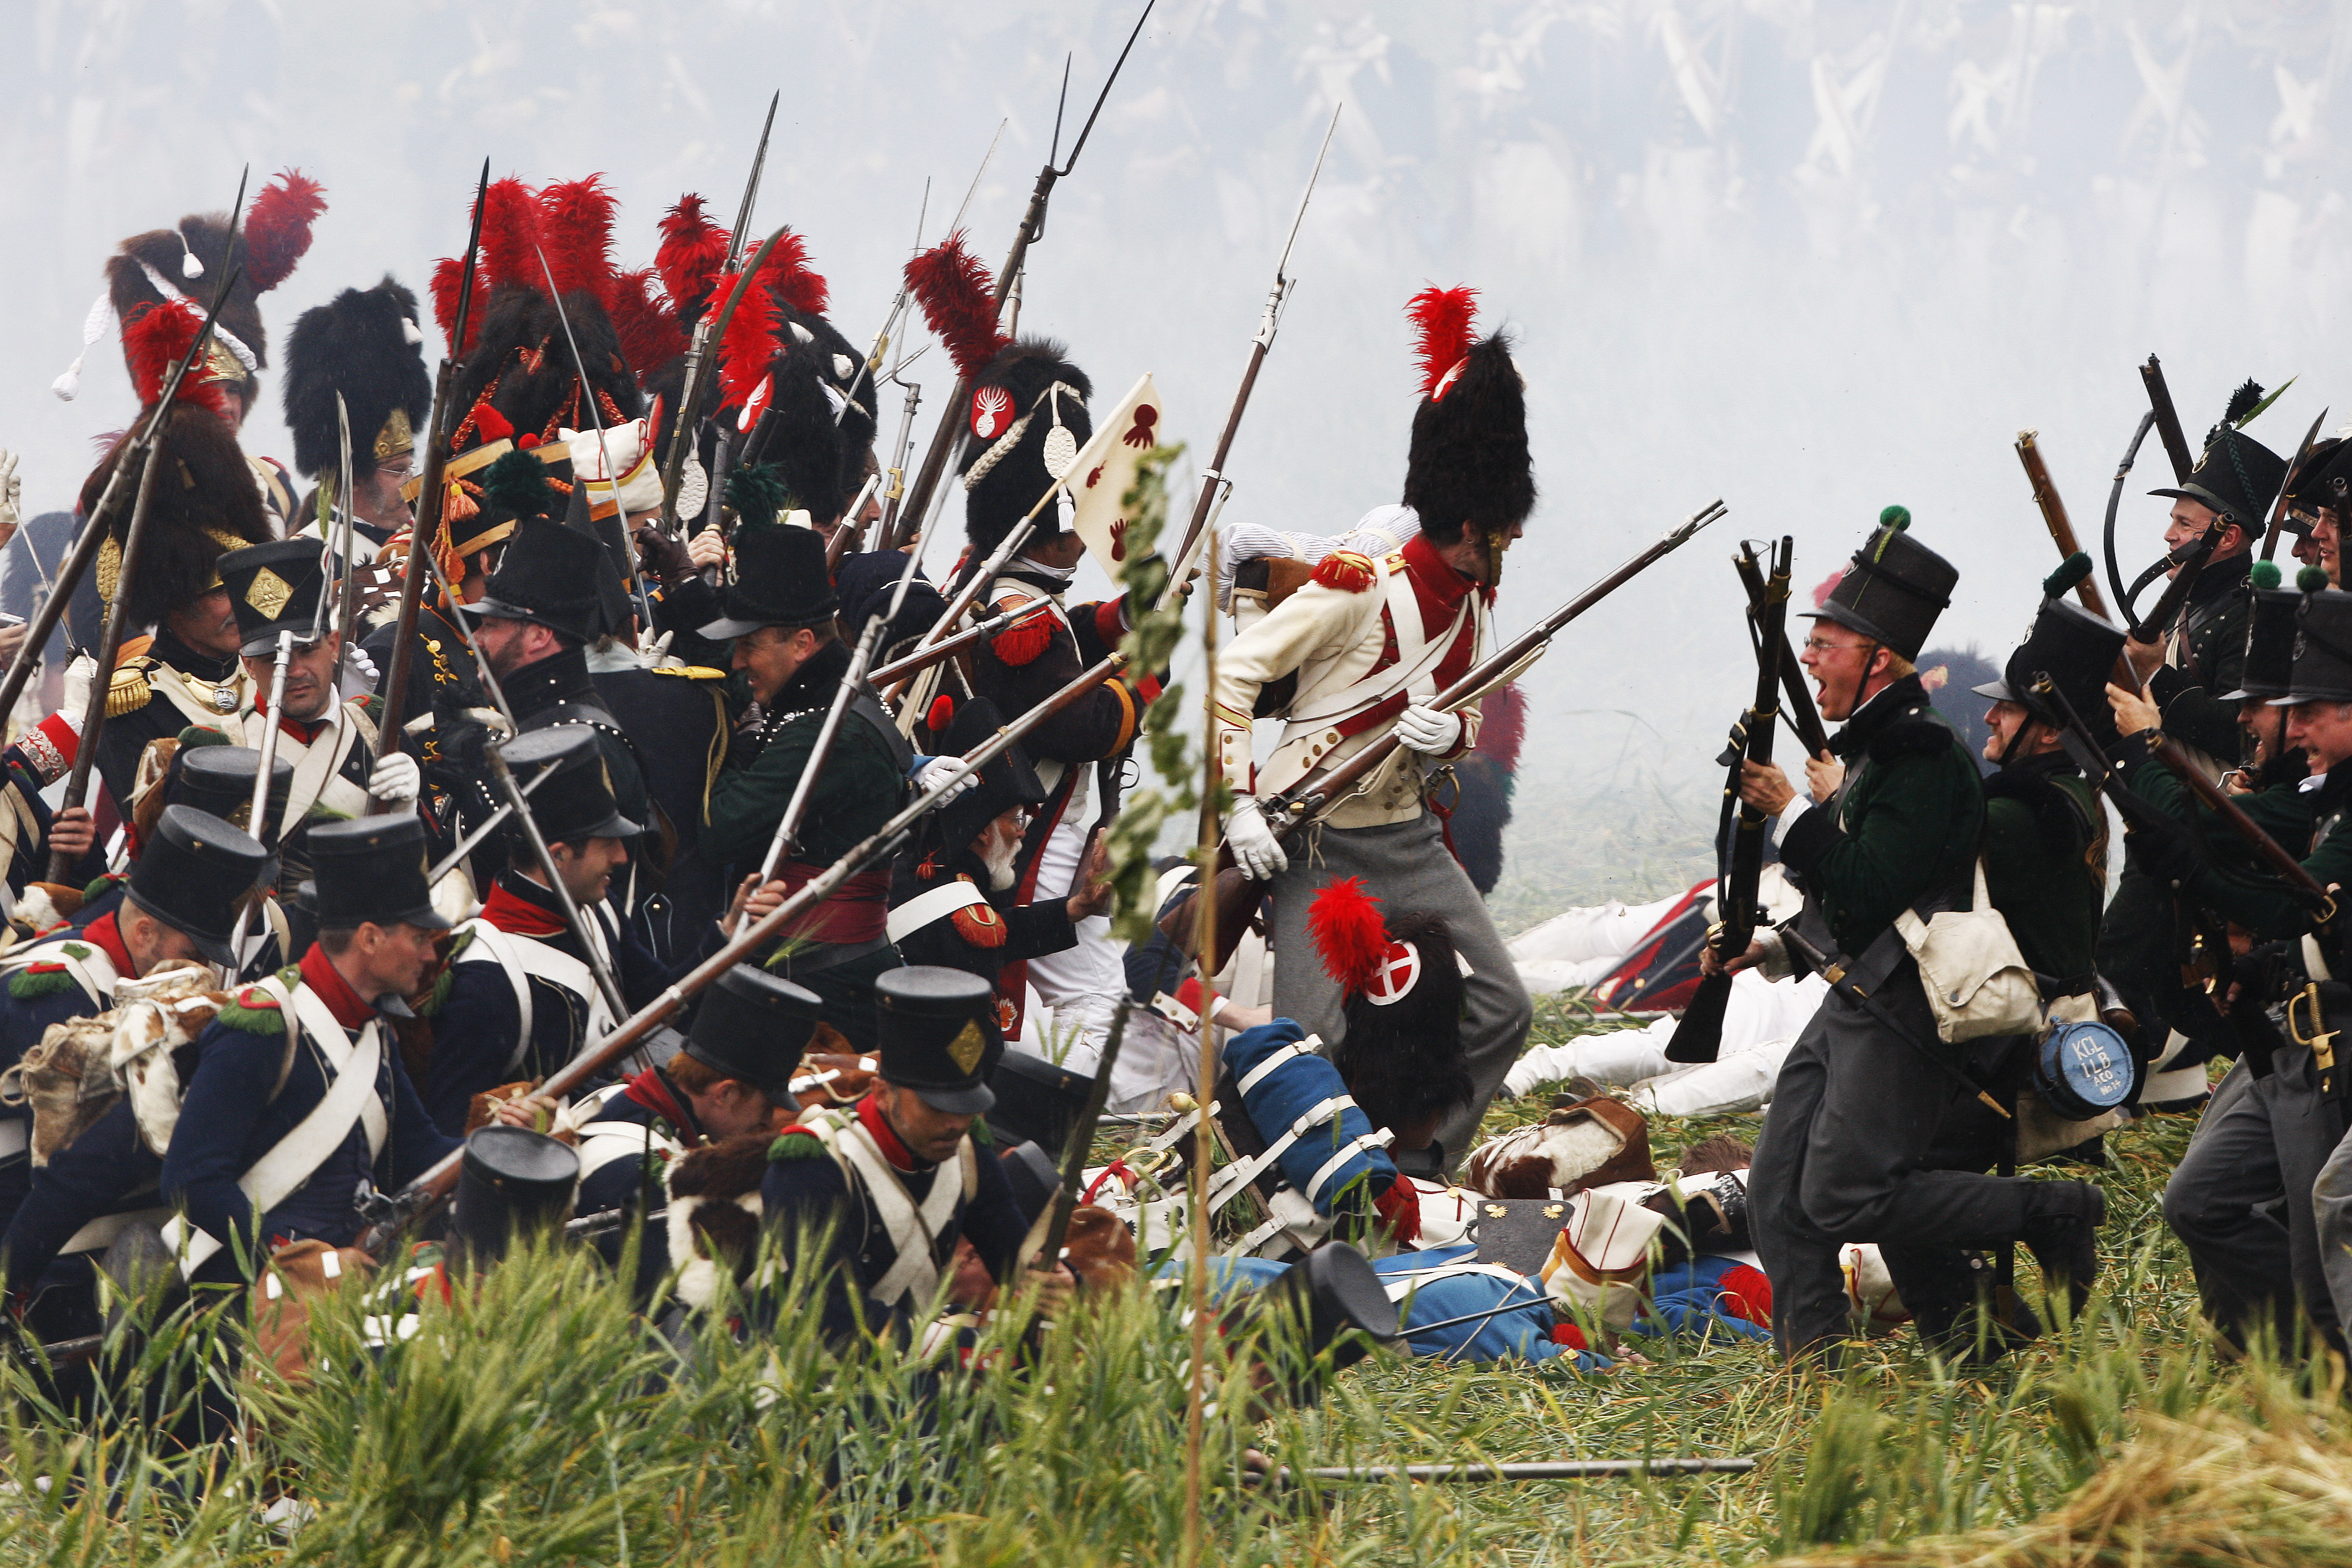 History enthusiasts, dressed as members of the French and British Army, fight during a re-enactment of Napoleon's famous battle of Waterloo in Braine-l'Alleud June 21, 2009. 2015 marks the 200th anniversary of the decisive battle. Credit: Thierry Roge/REUTERS